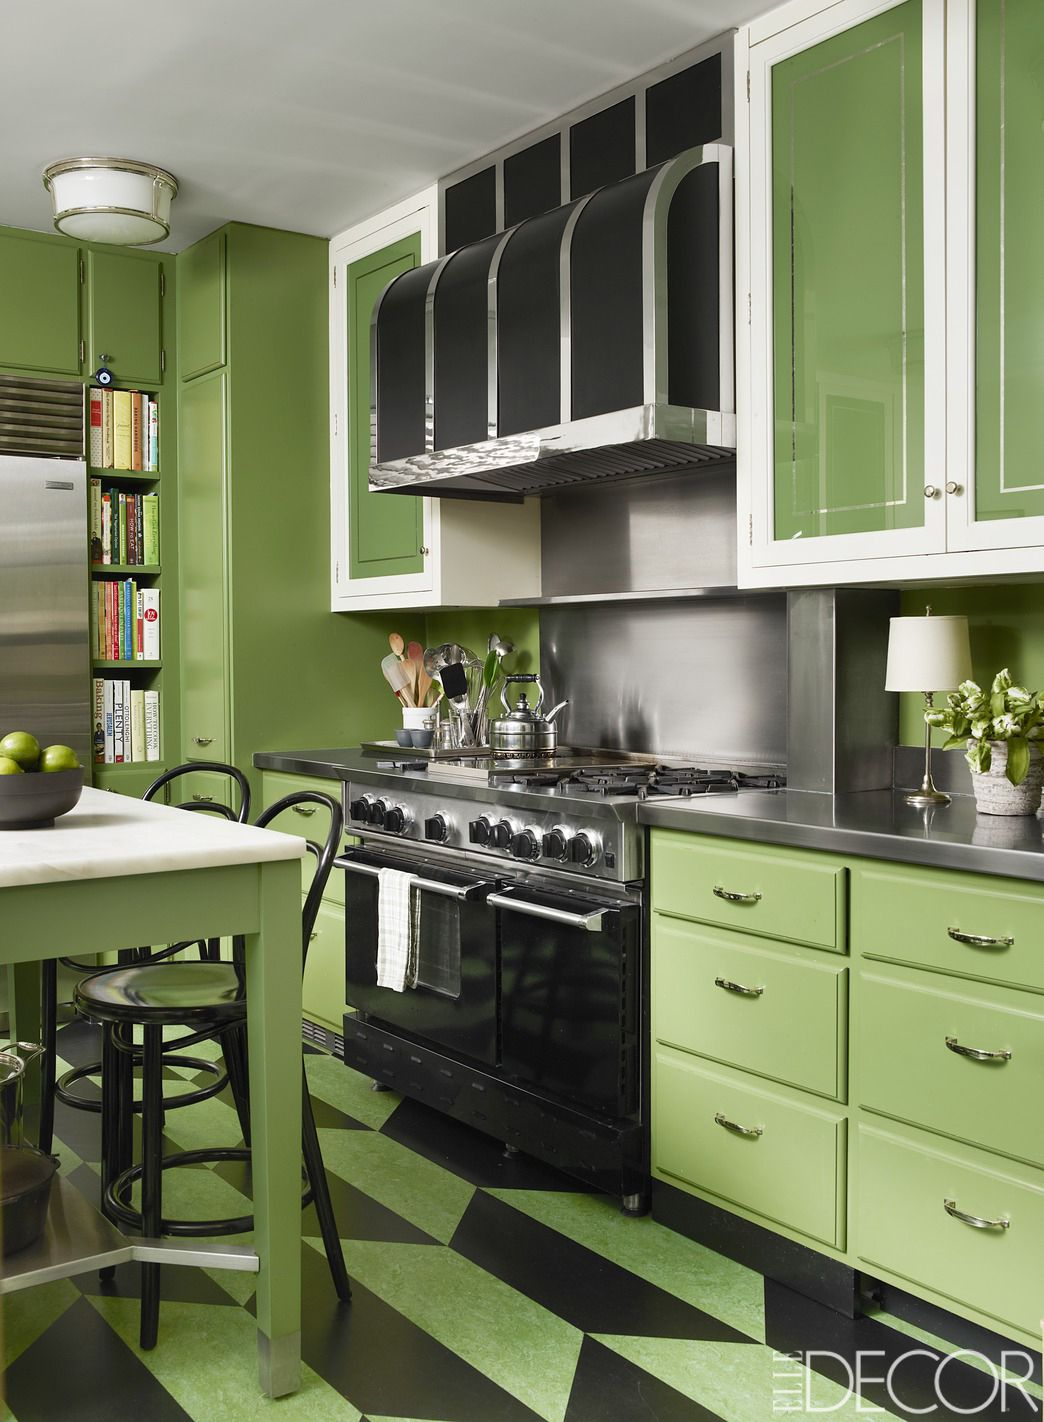 Green Kitchen Design Ideas Paint Colors For Green Kitchens - Green kitchen accessories ideas